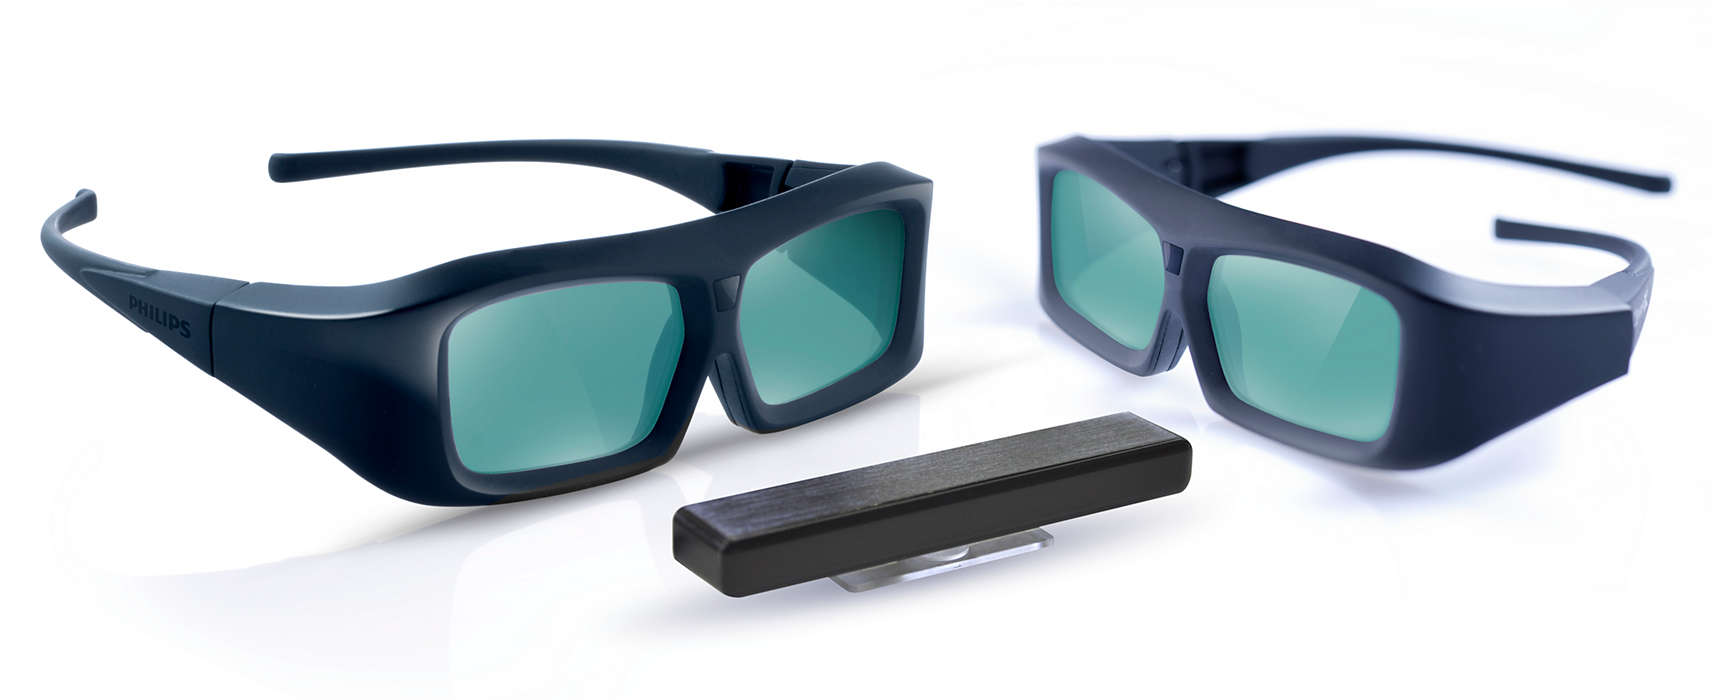 Élvezze a 3D-t Philips 3D Ready TV-n